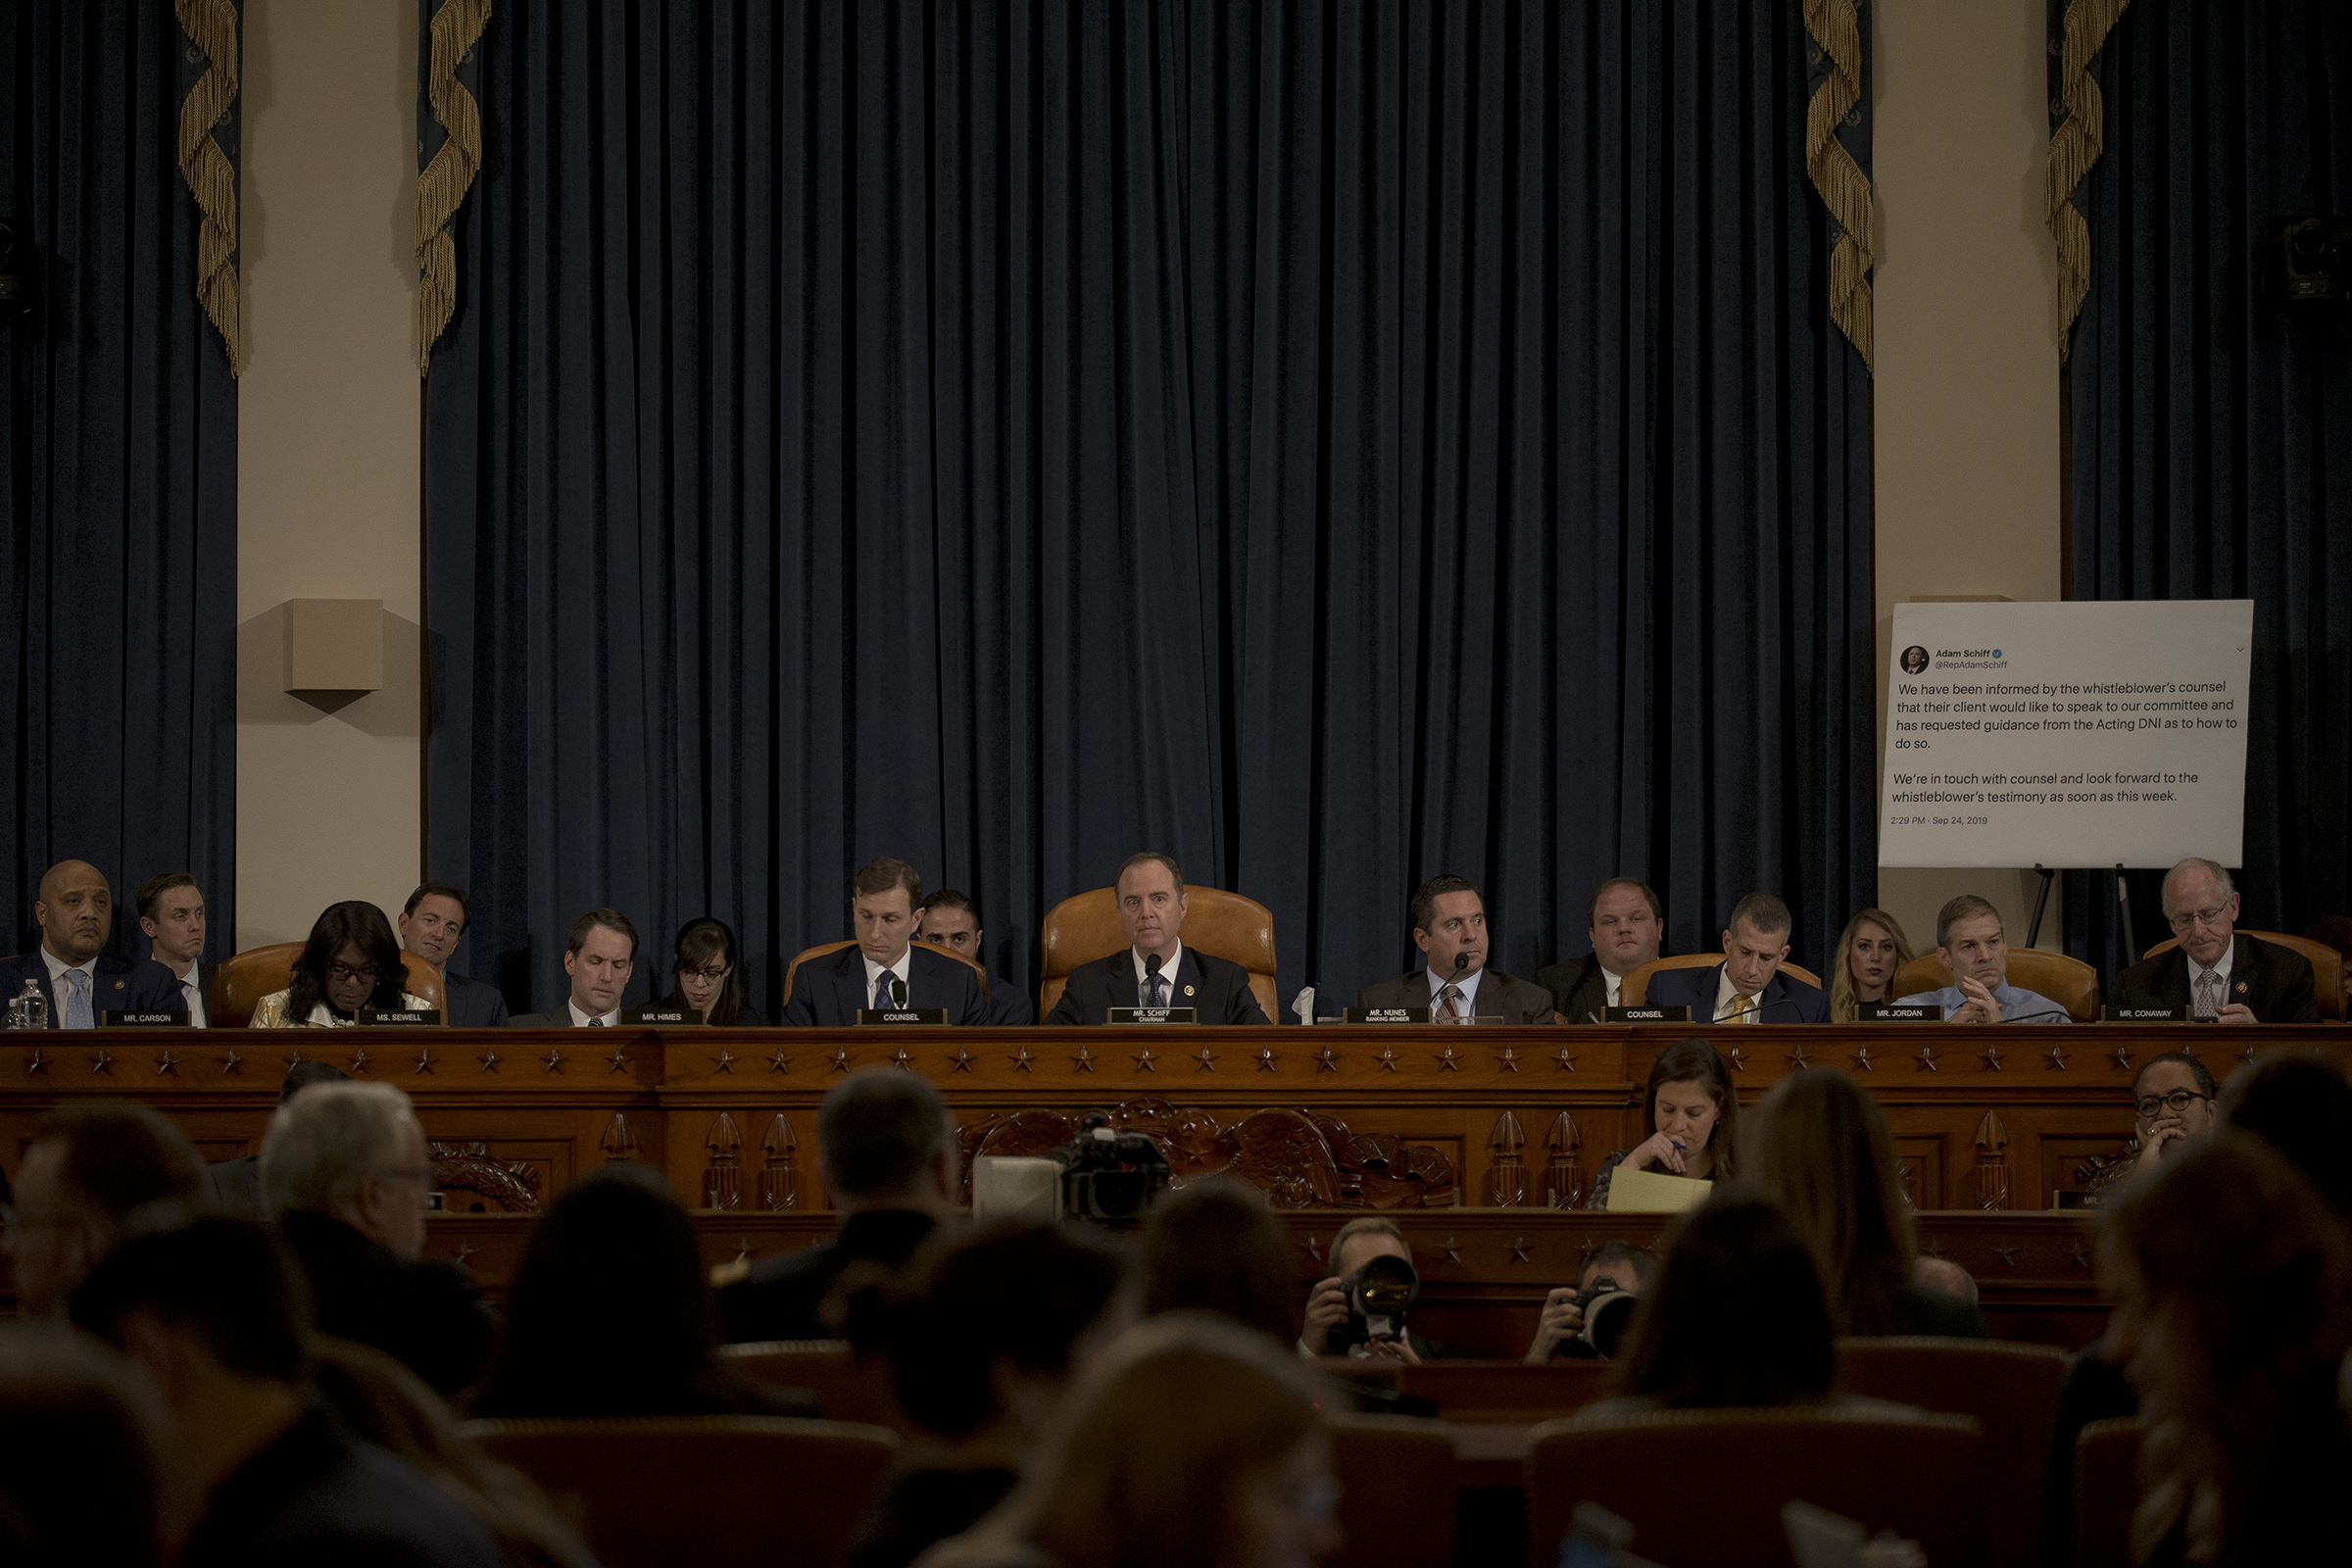 The House Intelligence Committee listens to testimony from witnesses Jennifer Williams, State Department official at the vice president's office, and Lt. Col. Alexander Vindeman, National Security Council staffer, during a hearing on the impeachment inquiry on Capitol Hill in Washington, D.C. on Nov. 19, 2019.